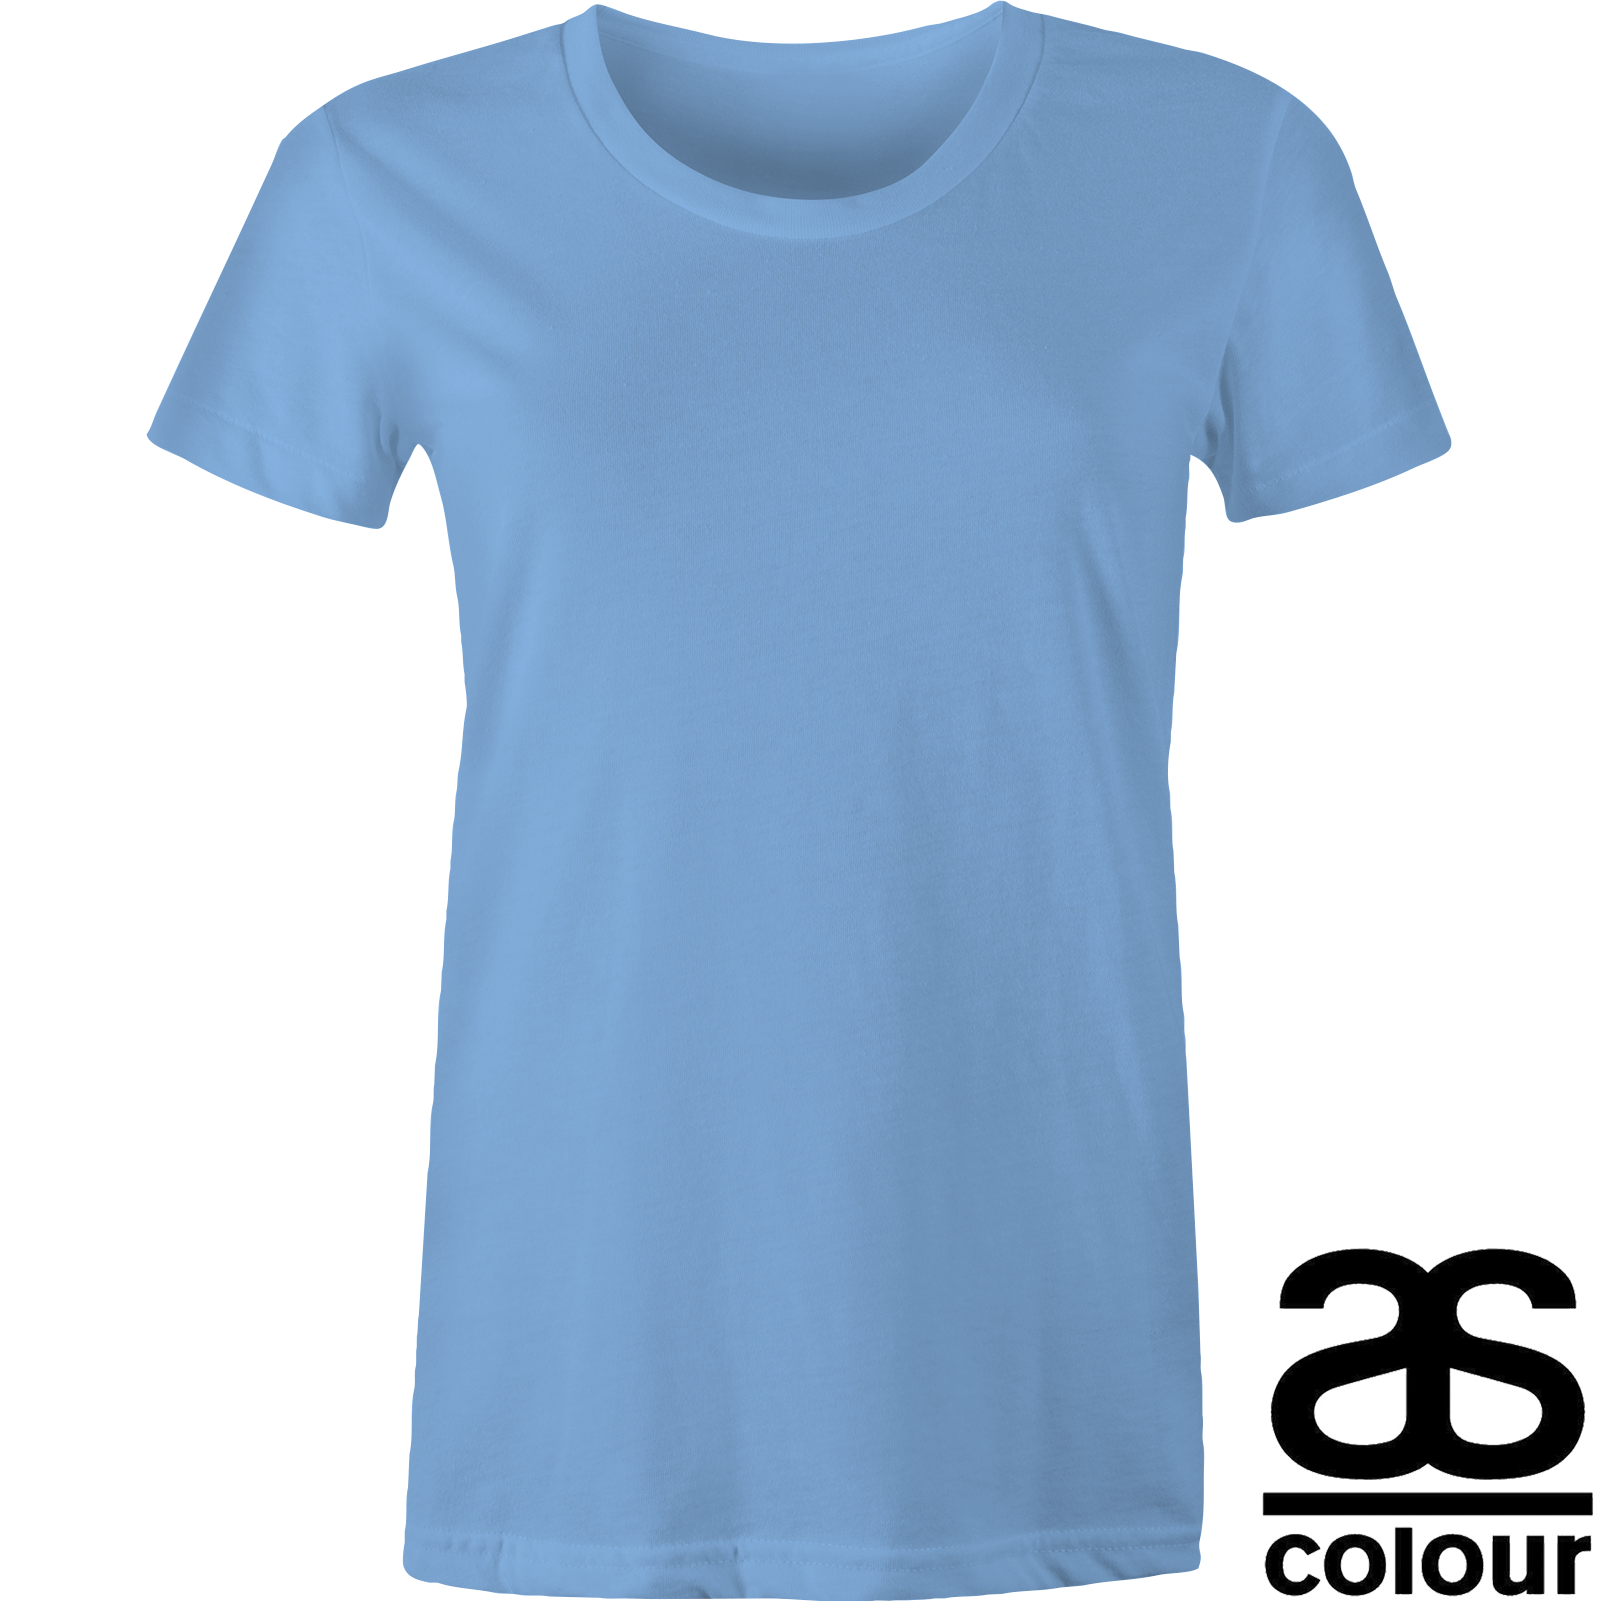 LADIES TWIN LAYER T-SHIRT CHOICE COLOURS 8 10 12 14 16 BLUE RUSH 100/% COTTON